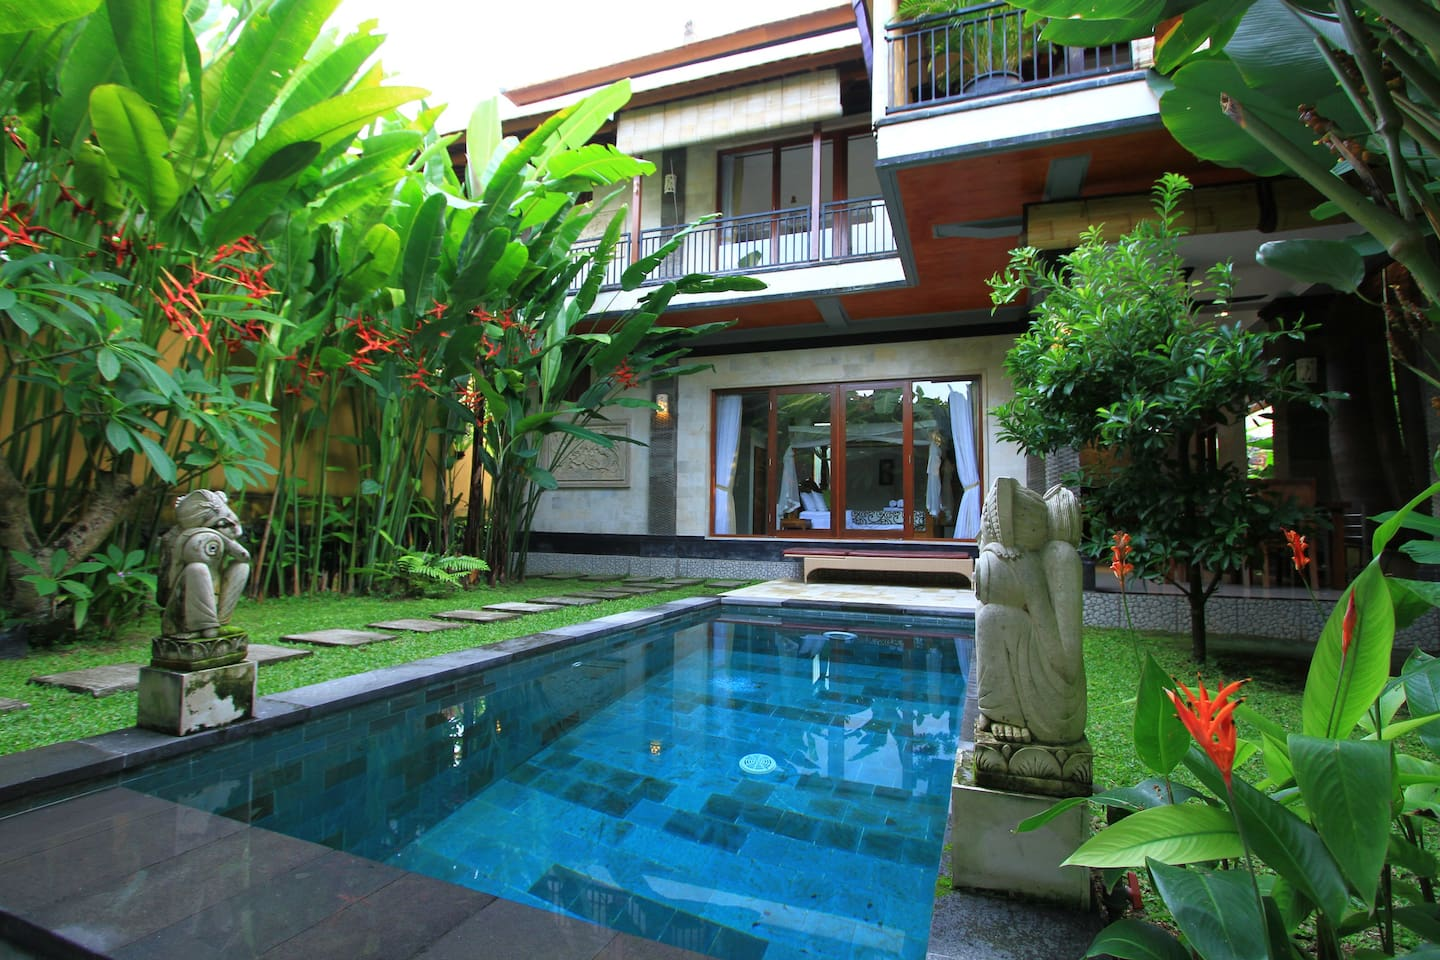 2 Bedroom and swimming pool